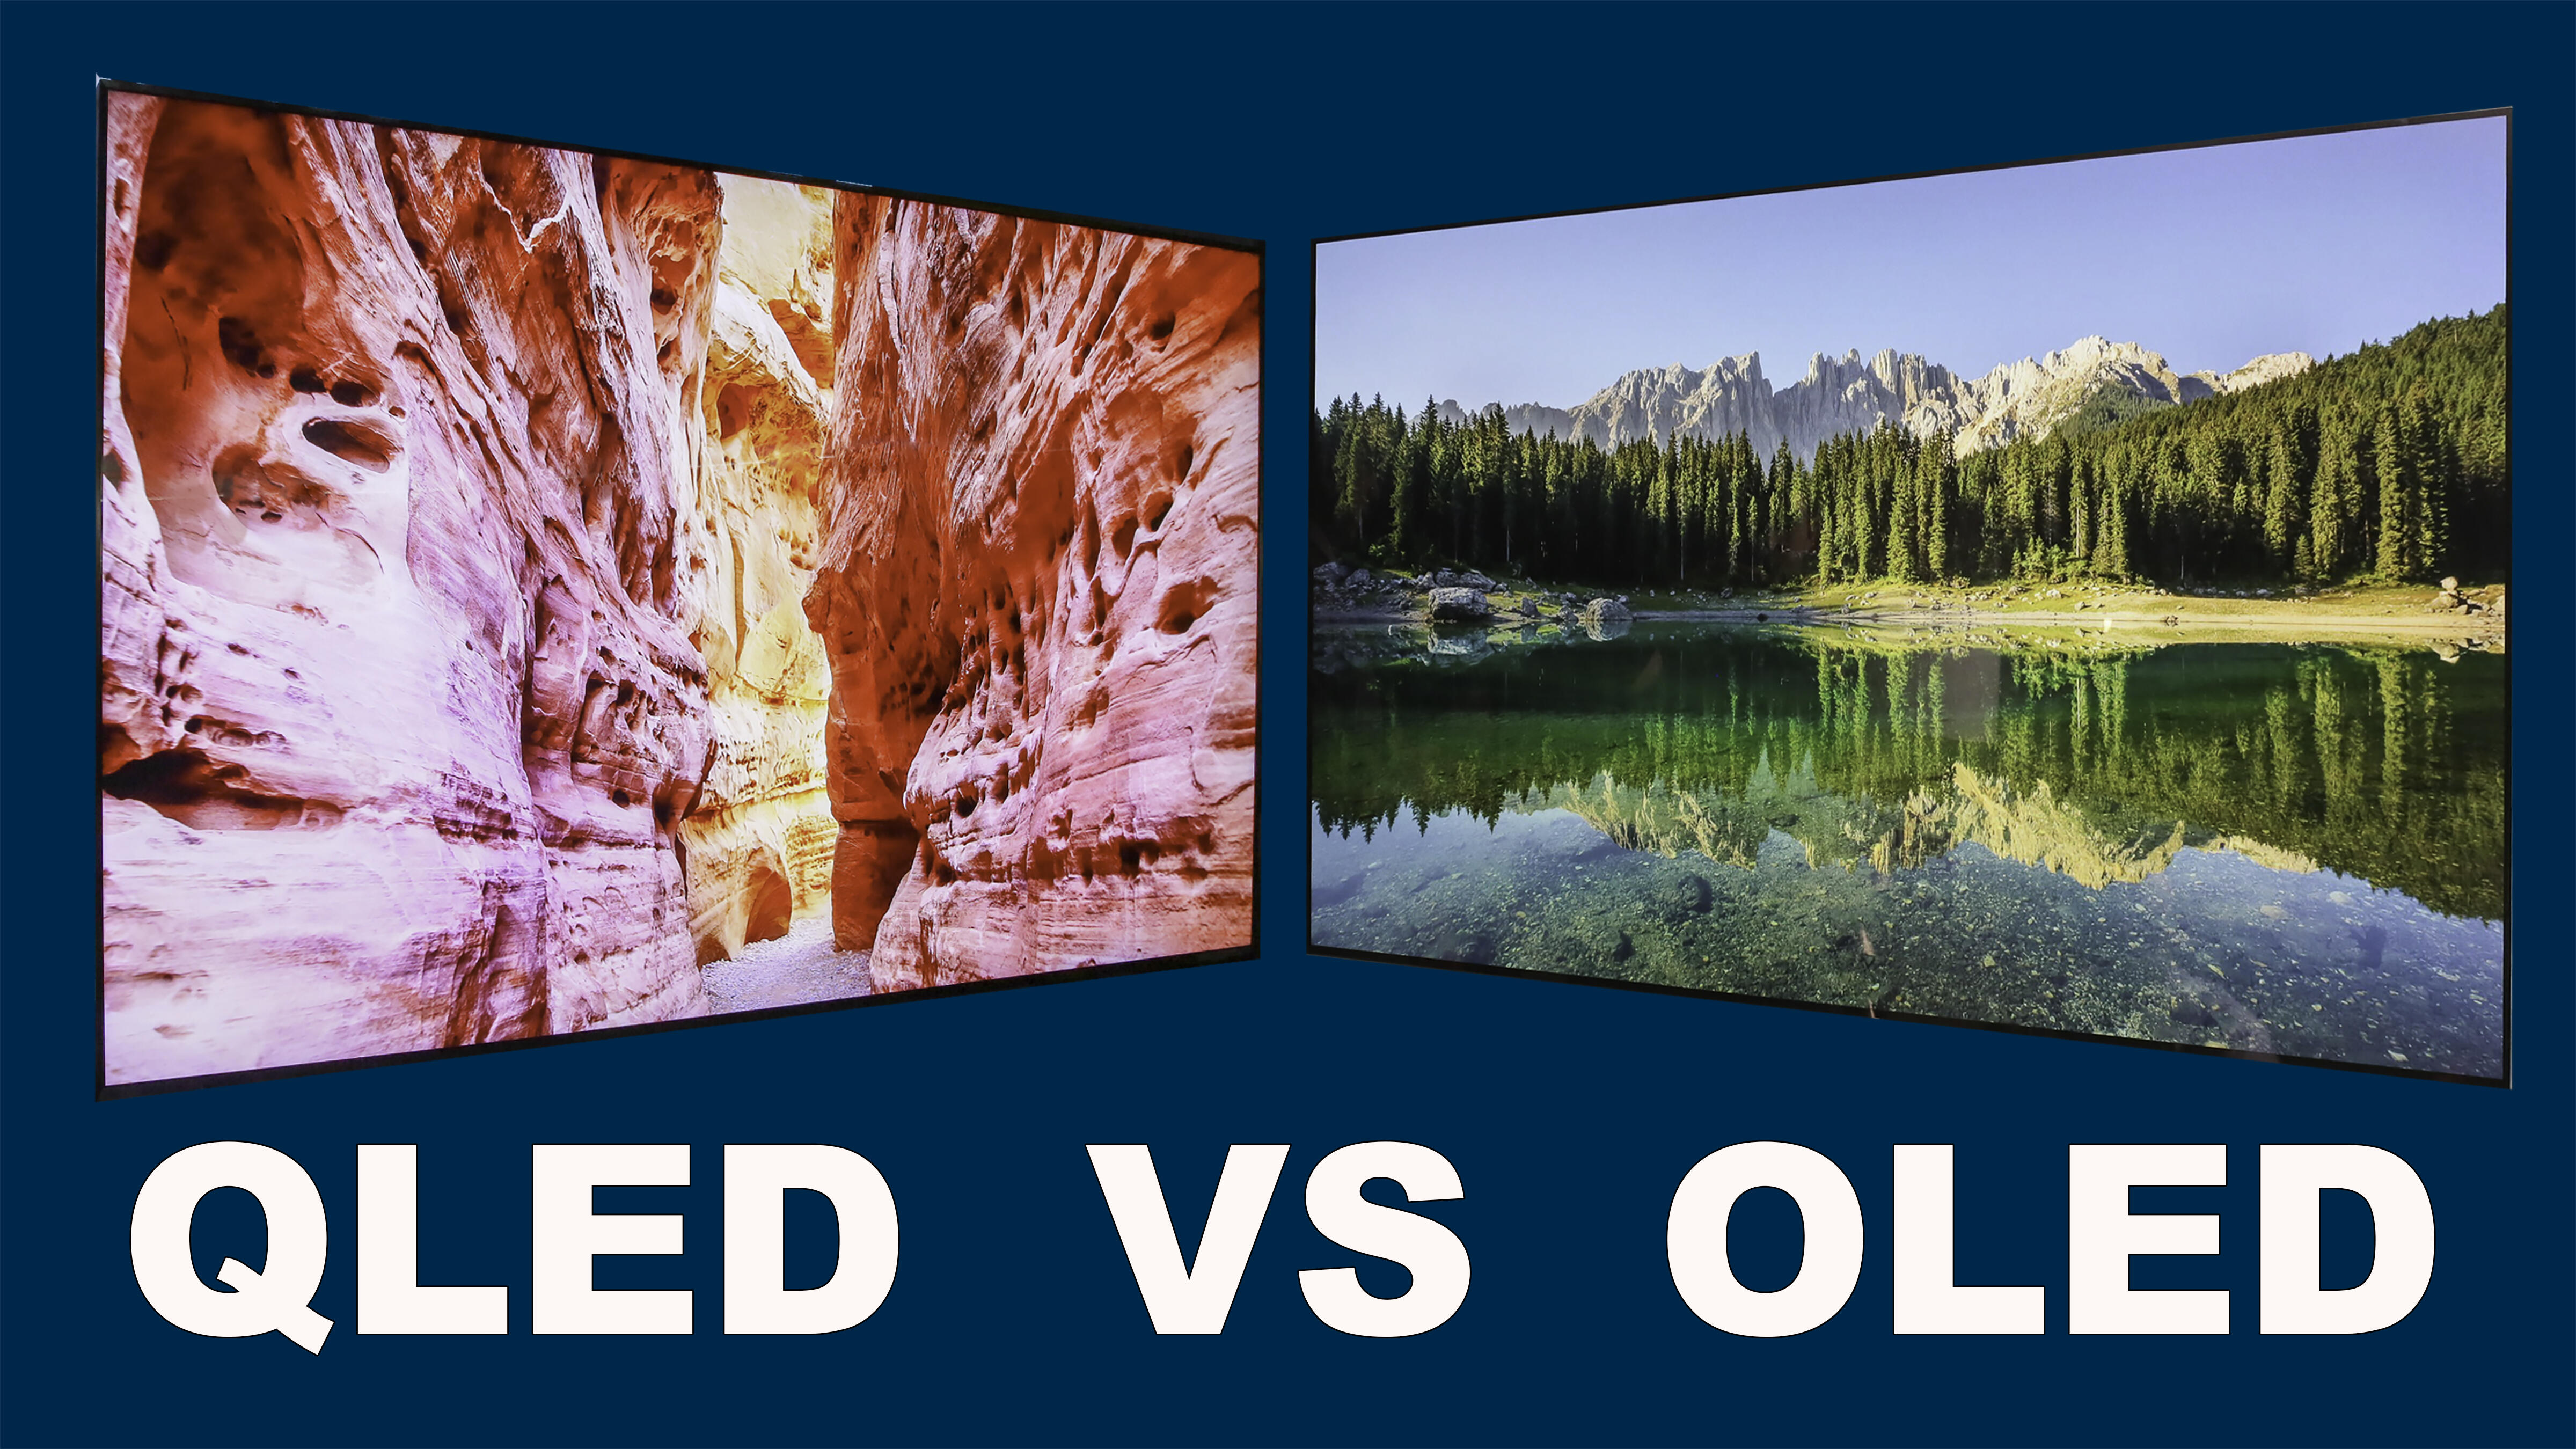 QLED vs. OLED TVs: What's the difference anyway?